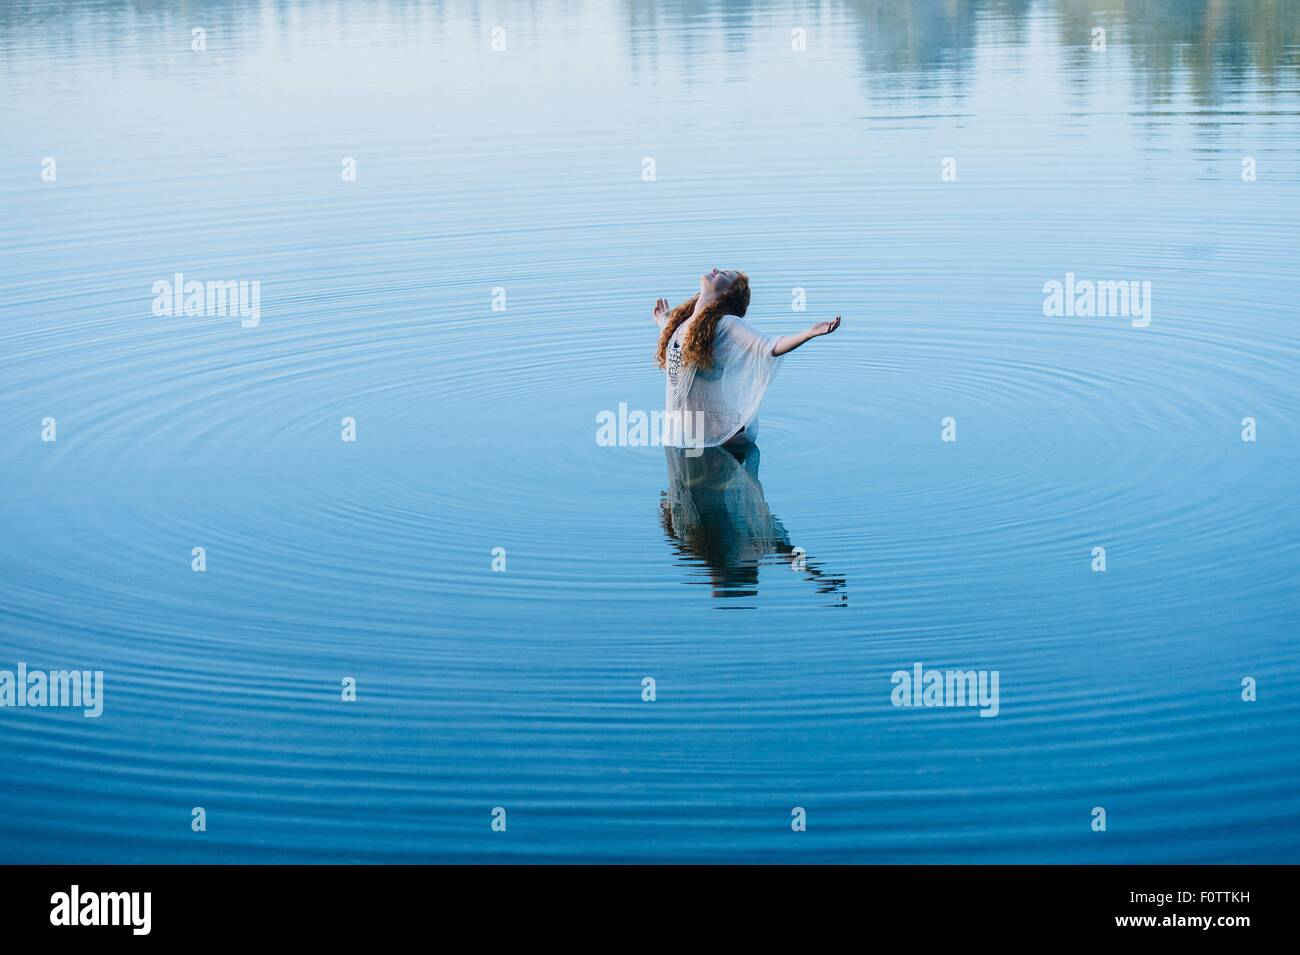 Young woman standing in middle of lake ripples with arms open and head back - Stock Image